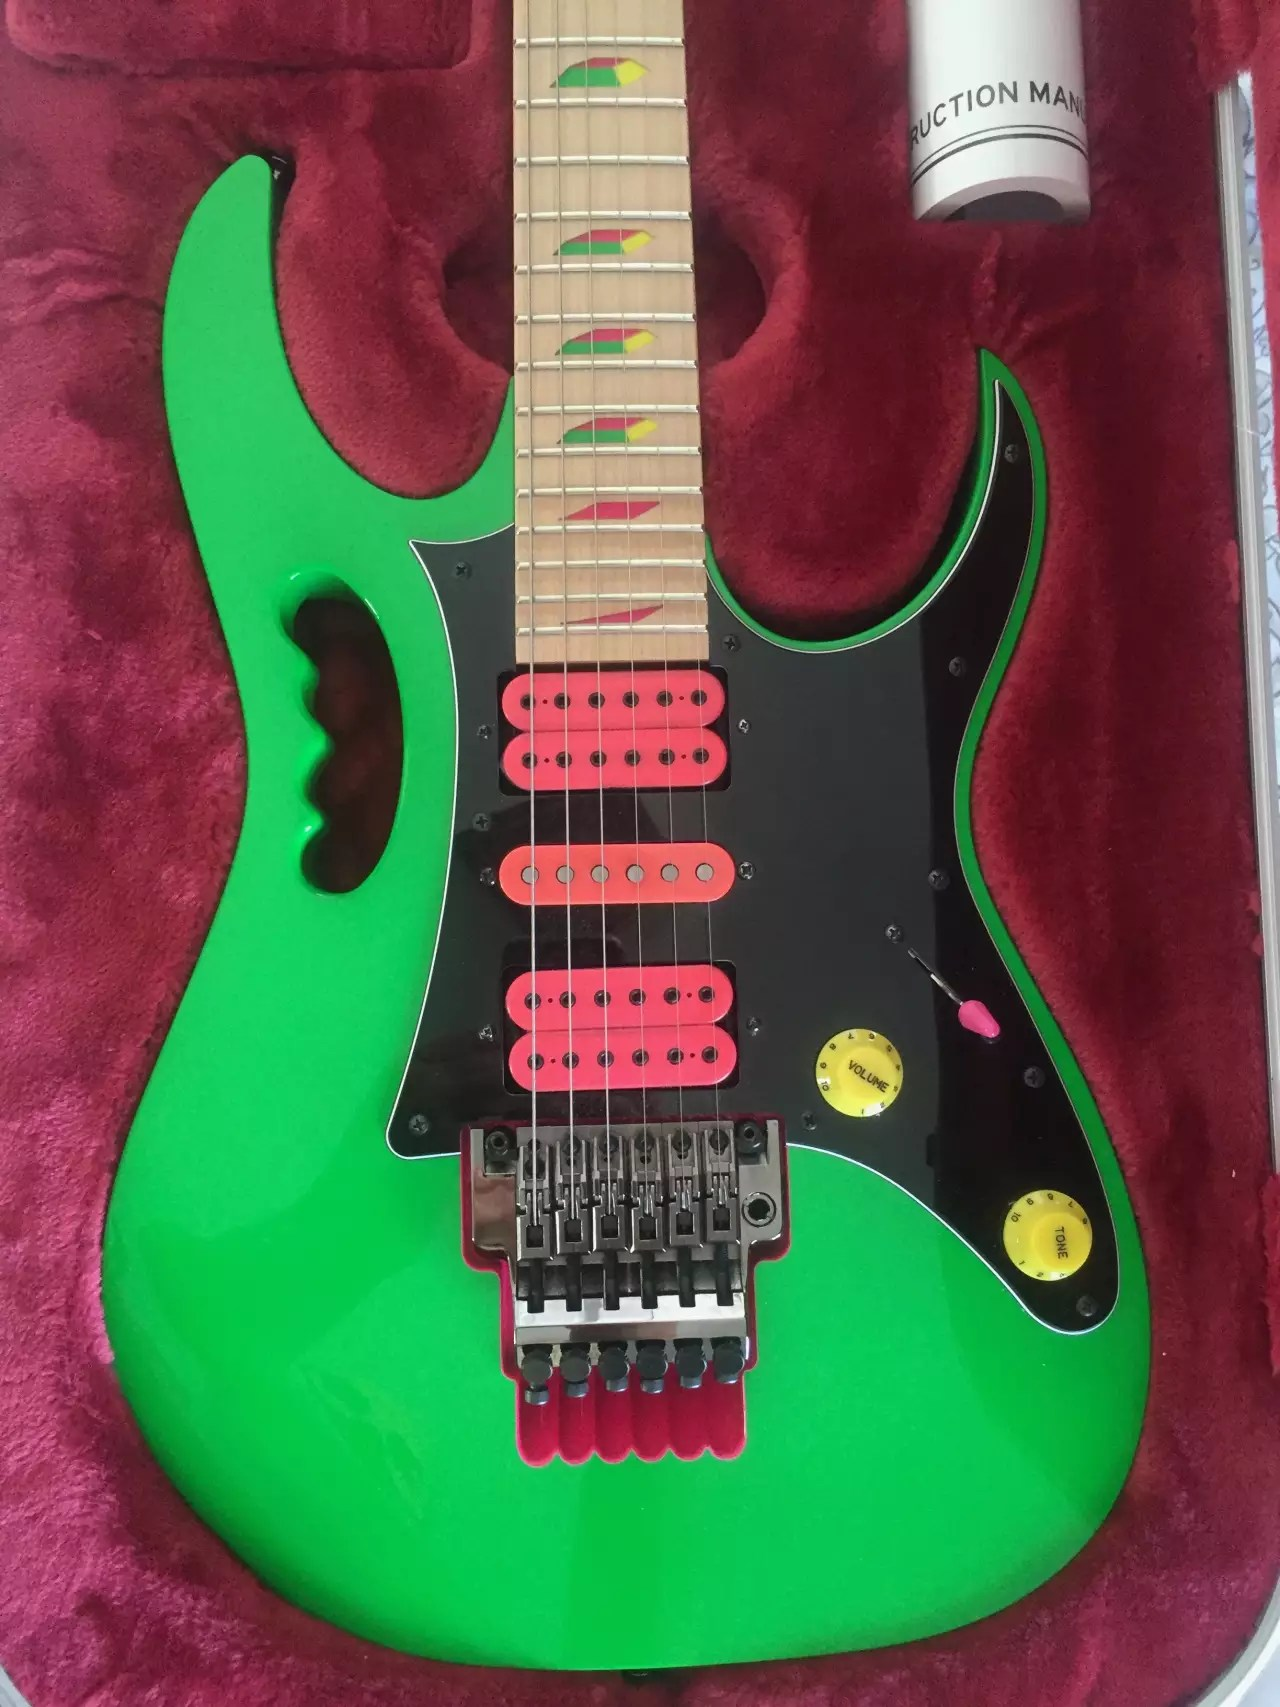 Ibanez Jem 777 Lng 30th Anniversary Limited Edition